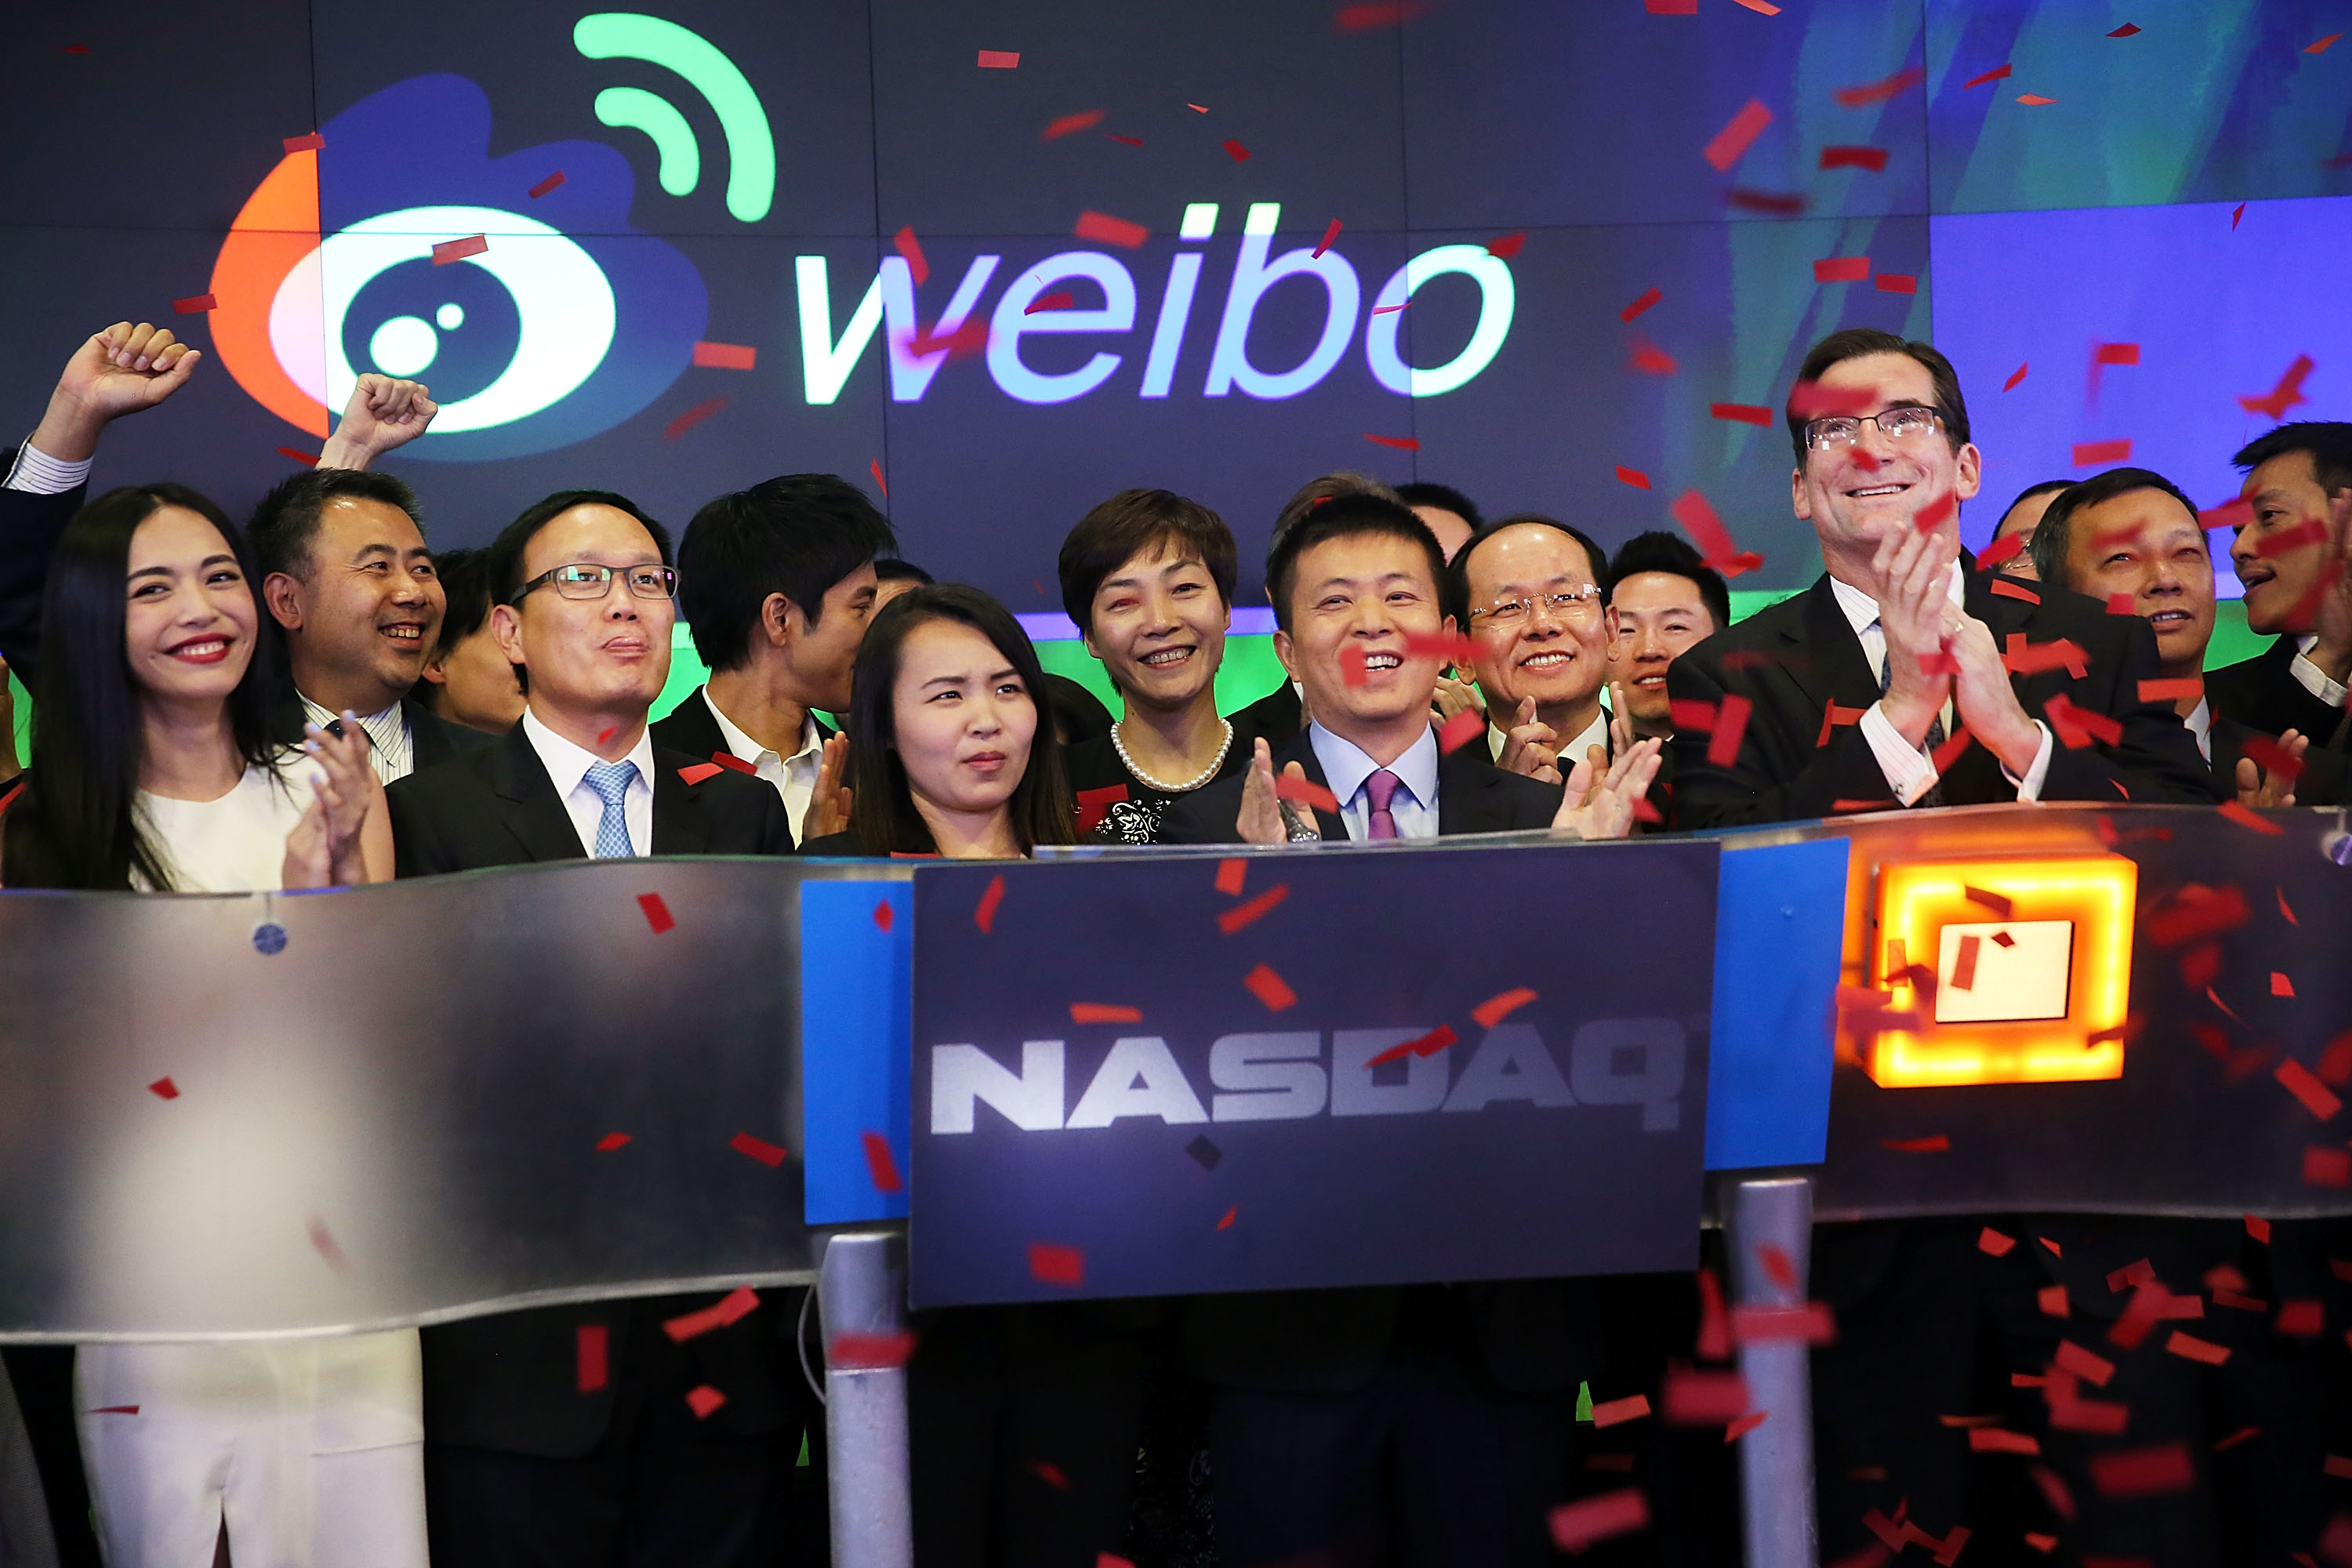 China's Weibo CEO Charles Chao (center) stands with Robert Greifeld, Nasdaq CEO, moments after Weibo began trading on the Nasdaq exchange under the ticker symbol WB on April 17, 2014 in New York City.